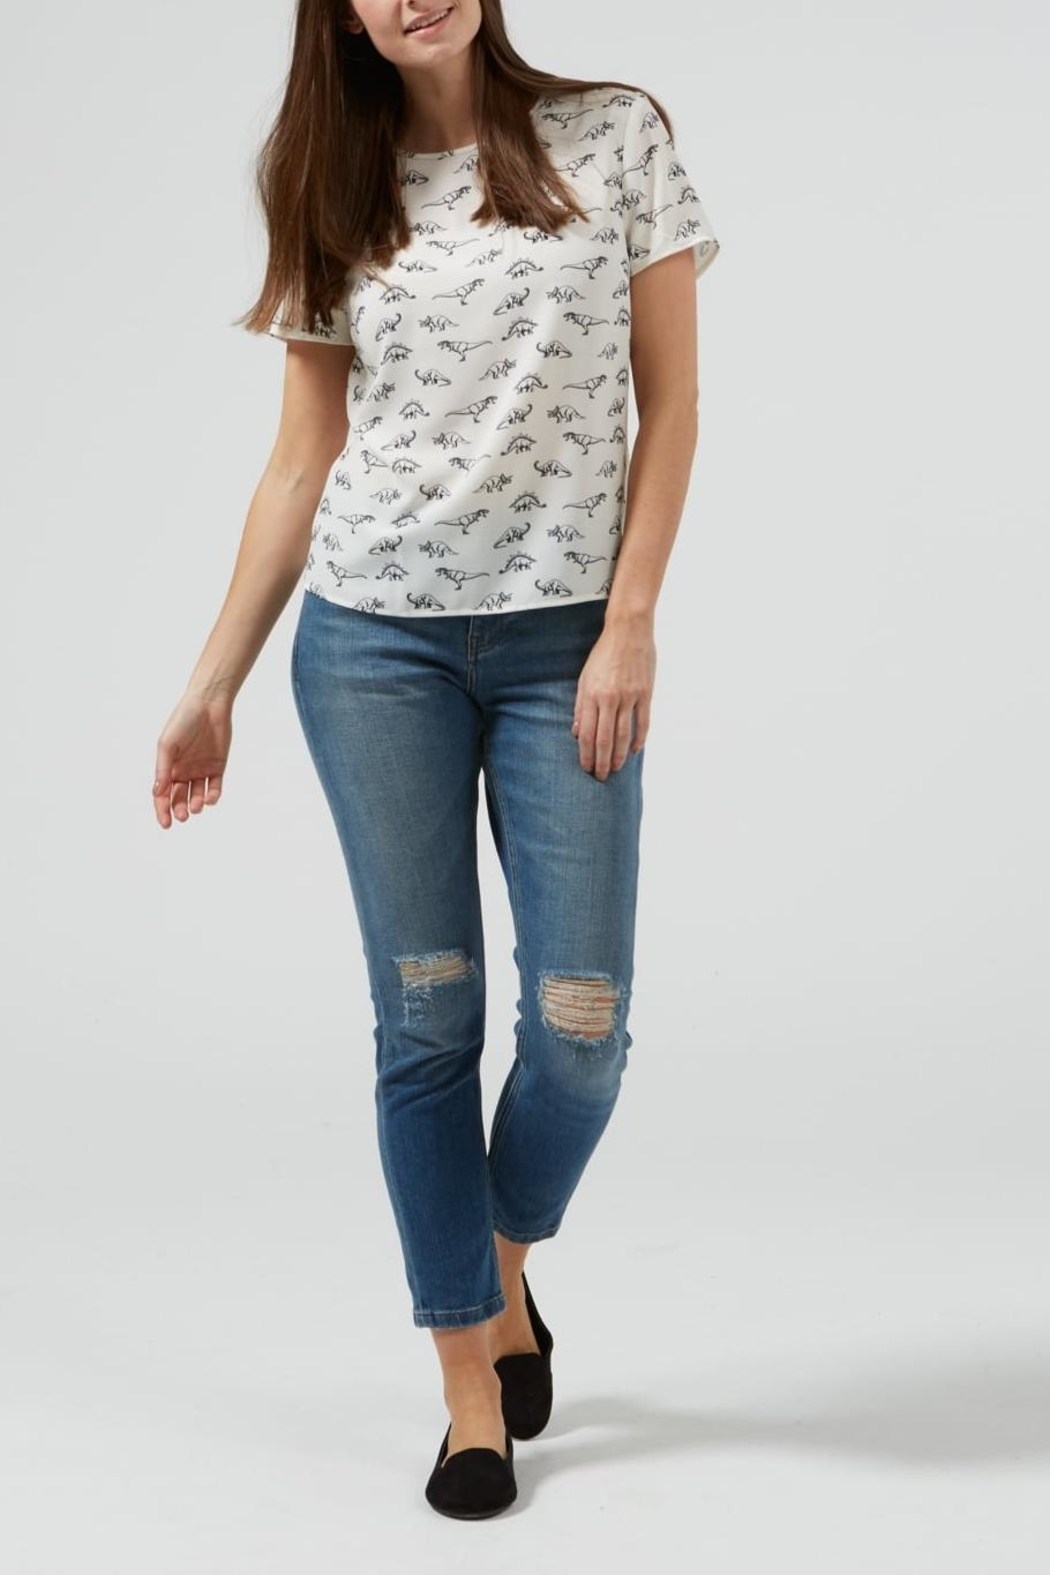 Sugarhill Boutique Dinosaur Print Top - Side Cropped Image